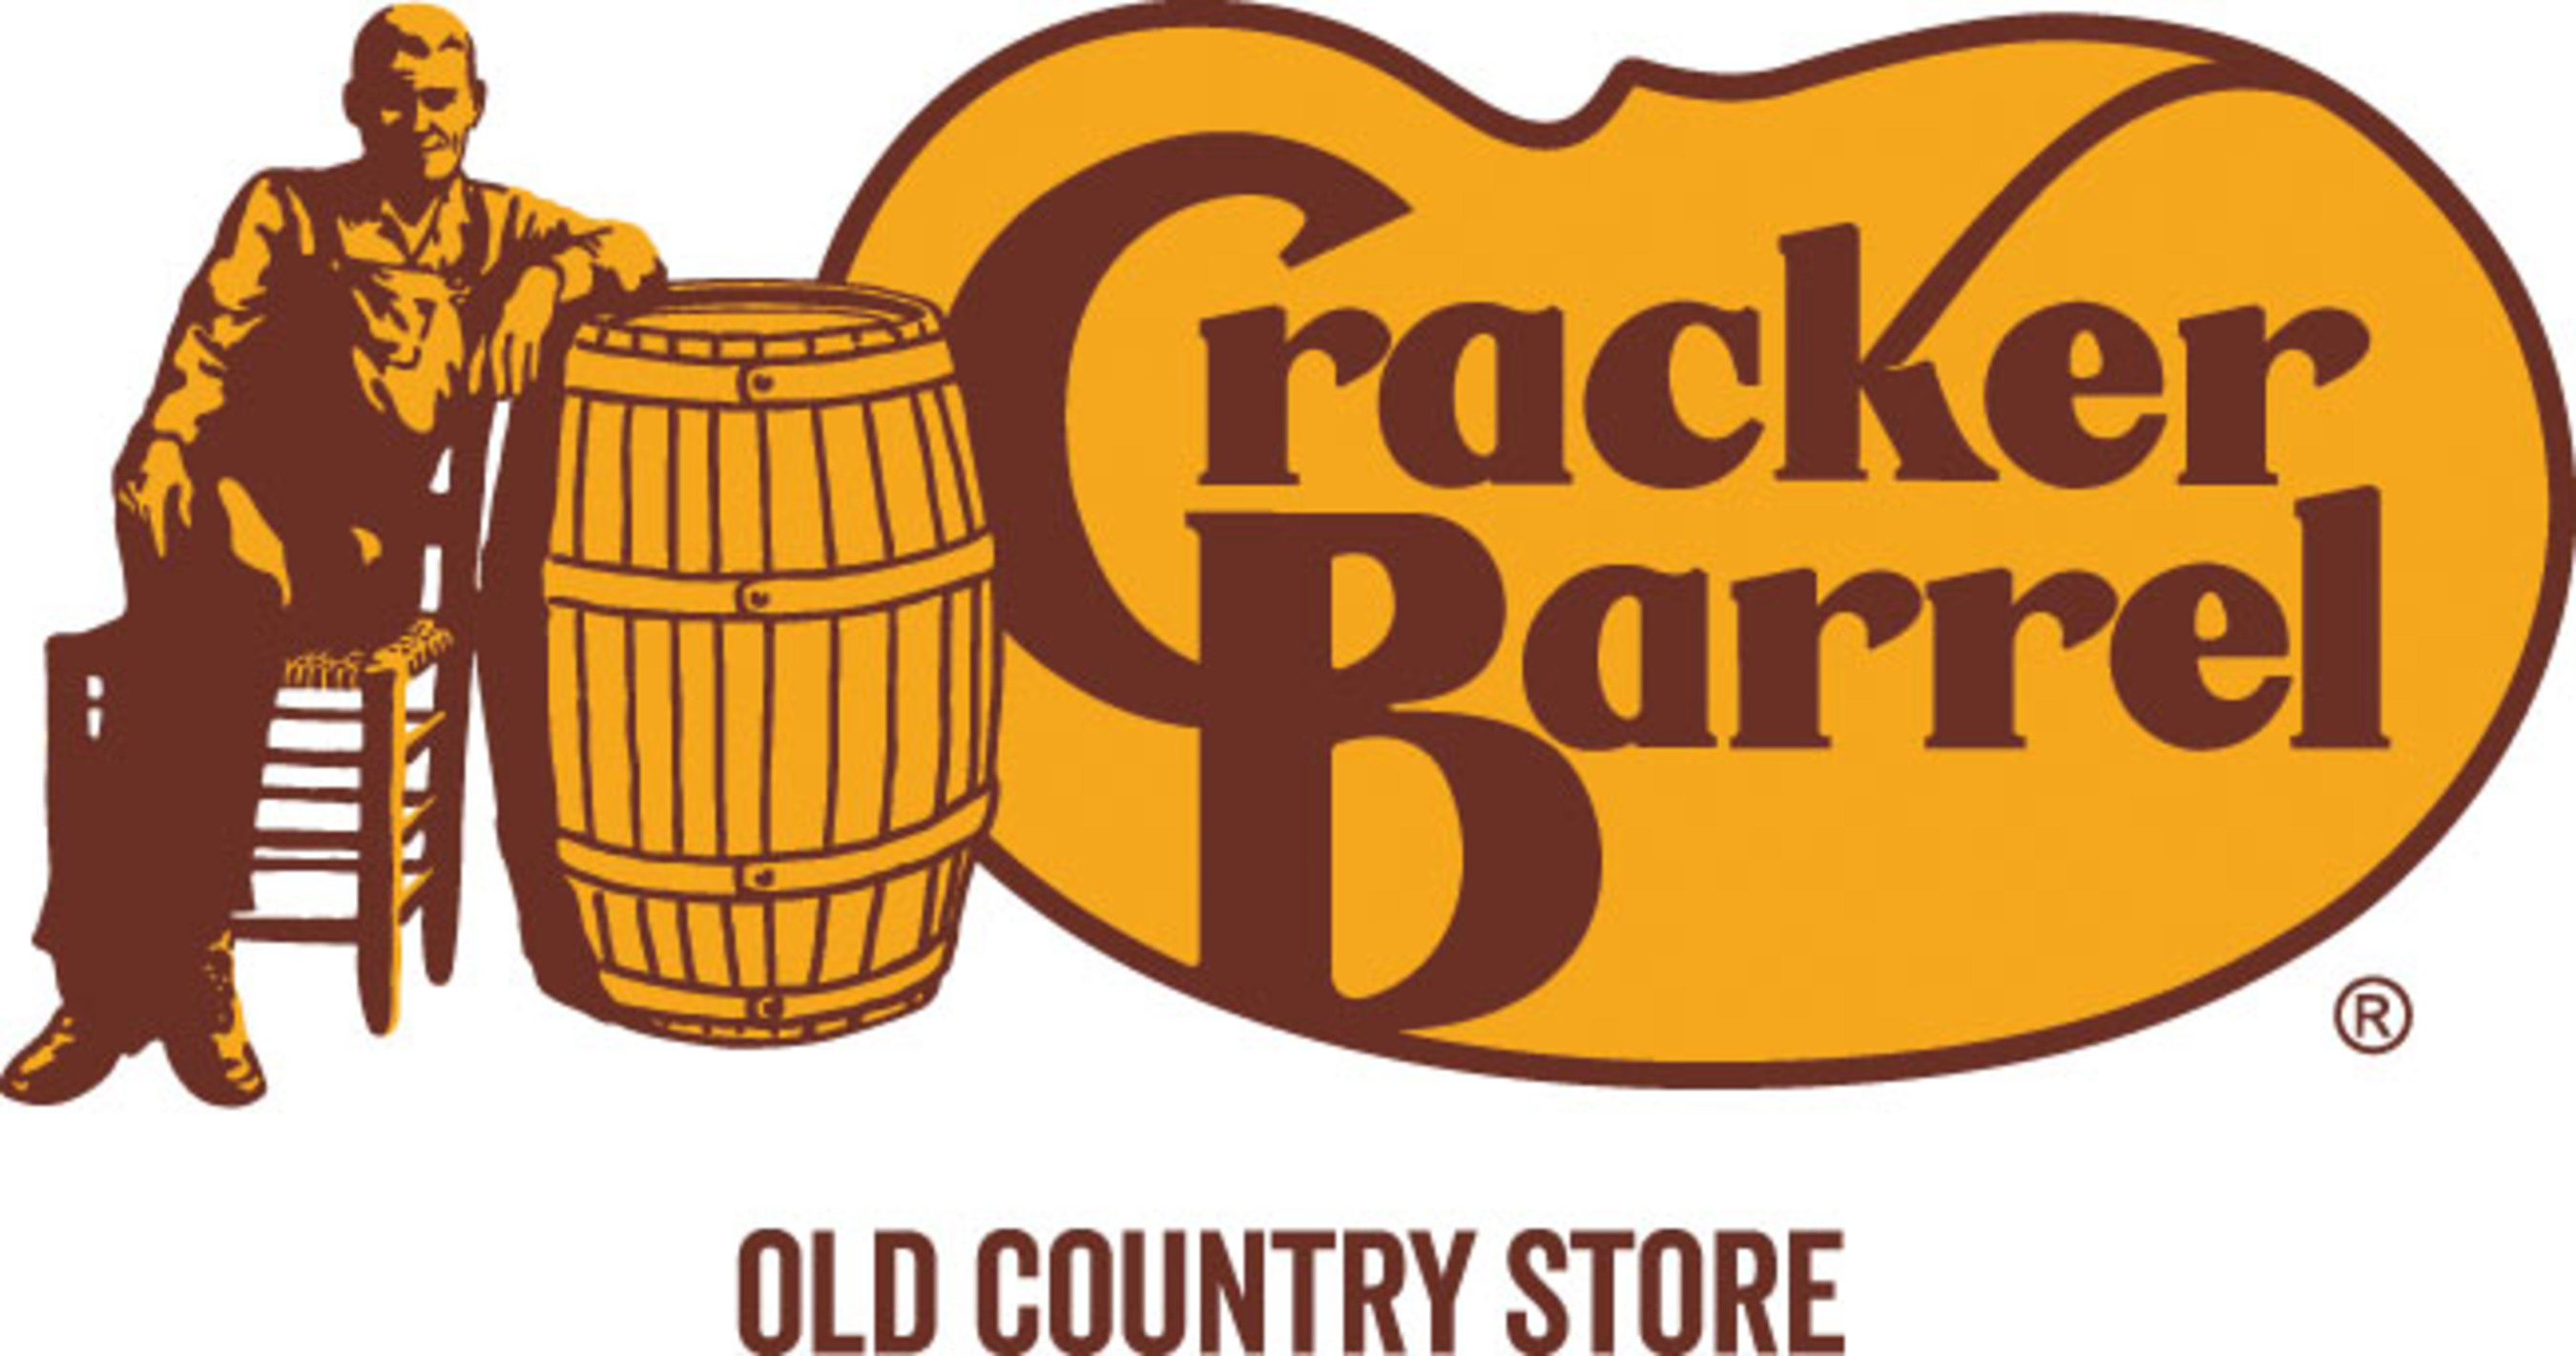 The Cracker Barrel Old Country Store Foundation Awards More Than